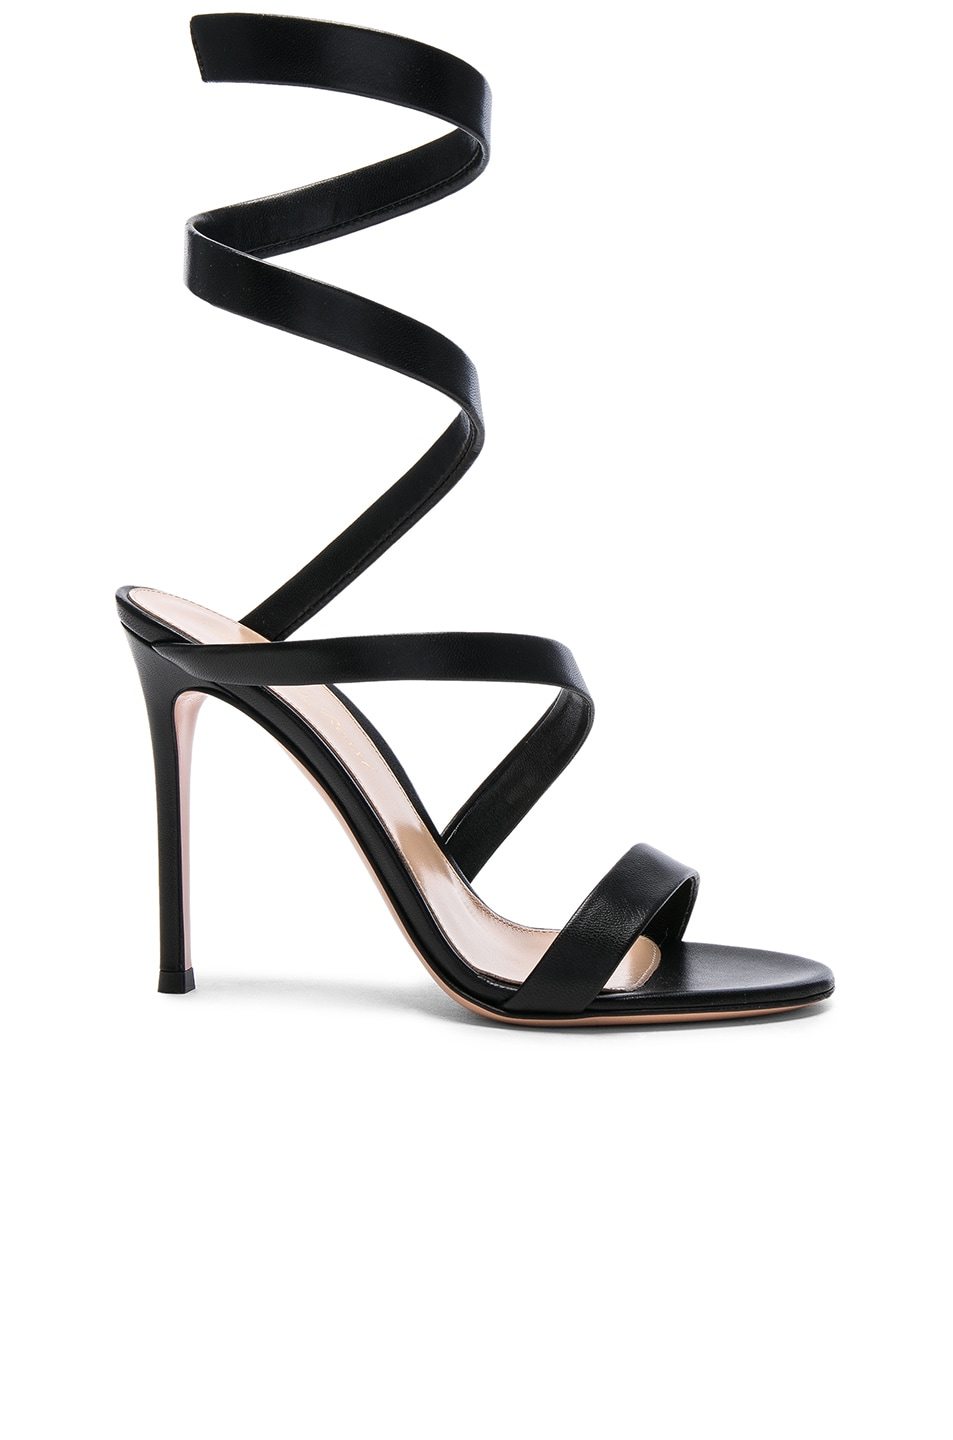 Image 1 of Gianvito Rossi Leather Opera Sandals in Black